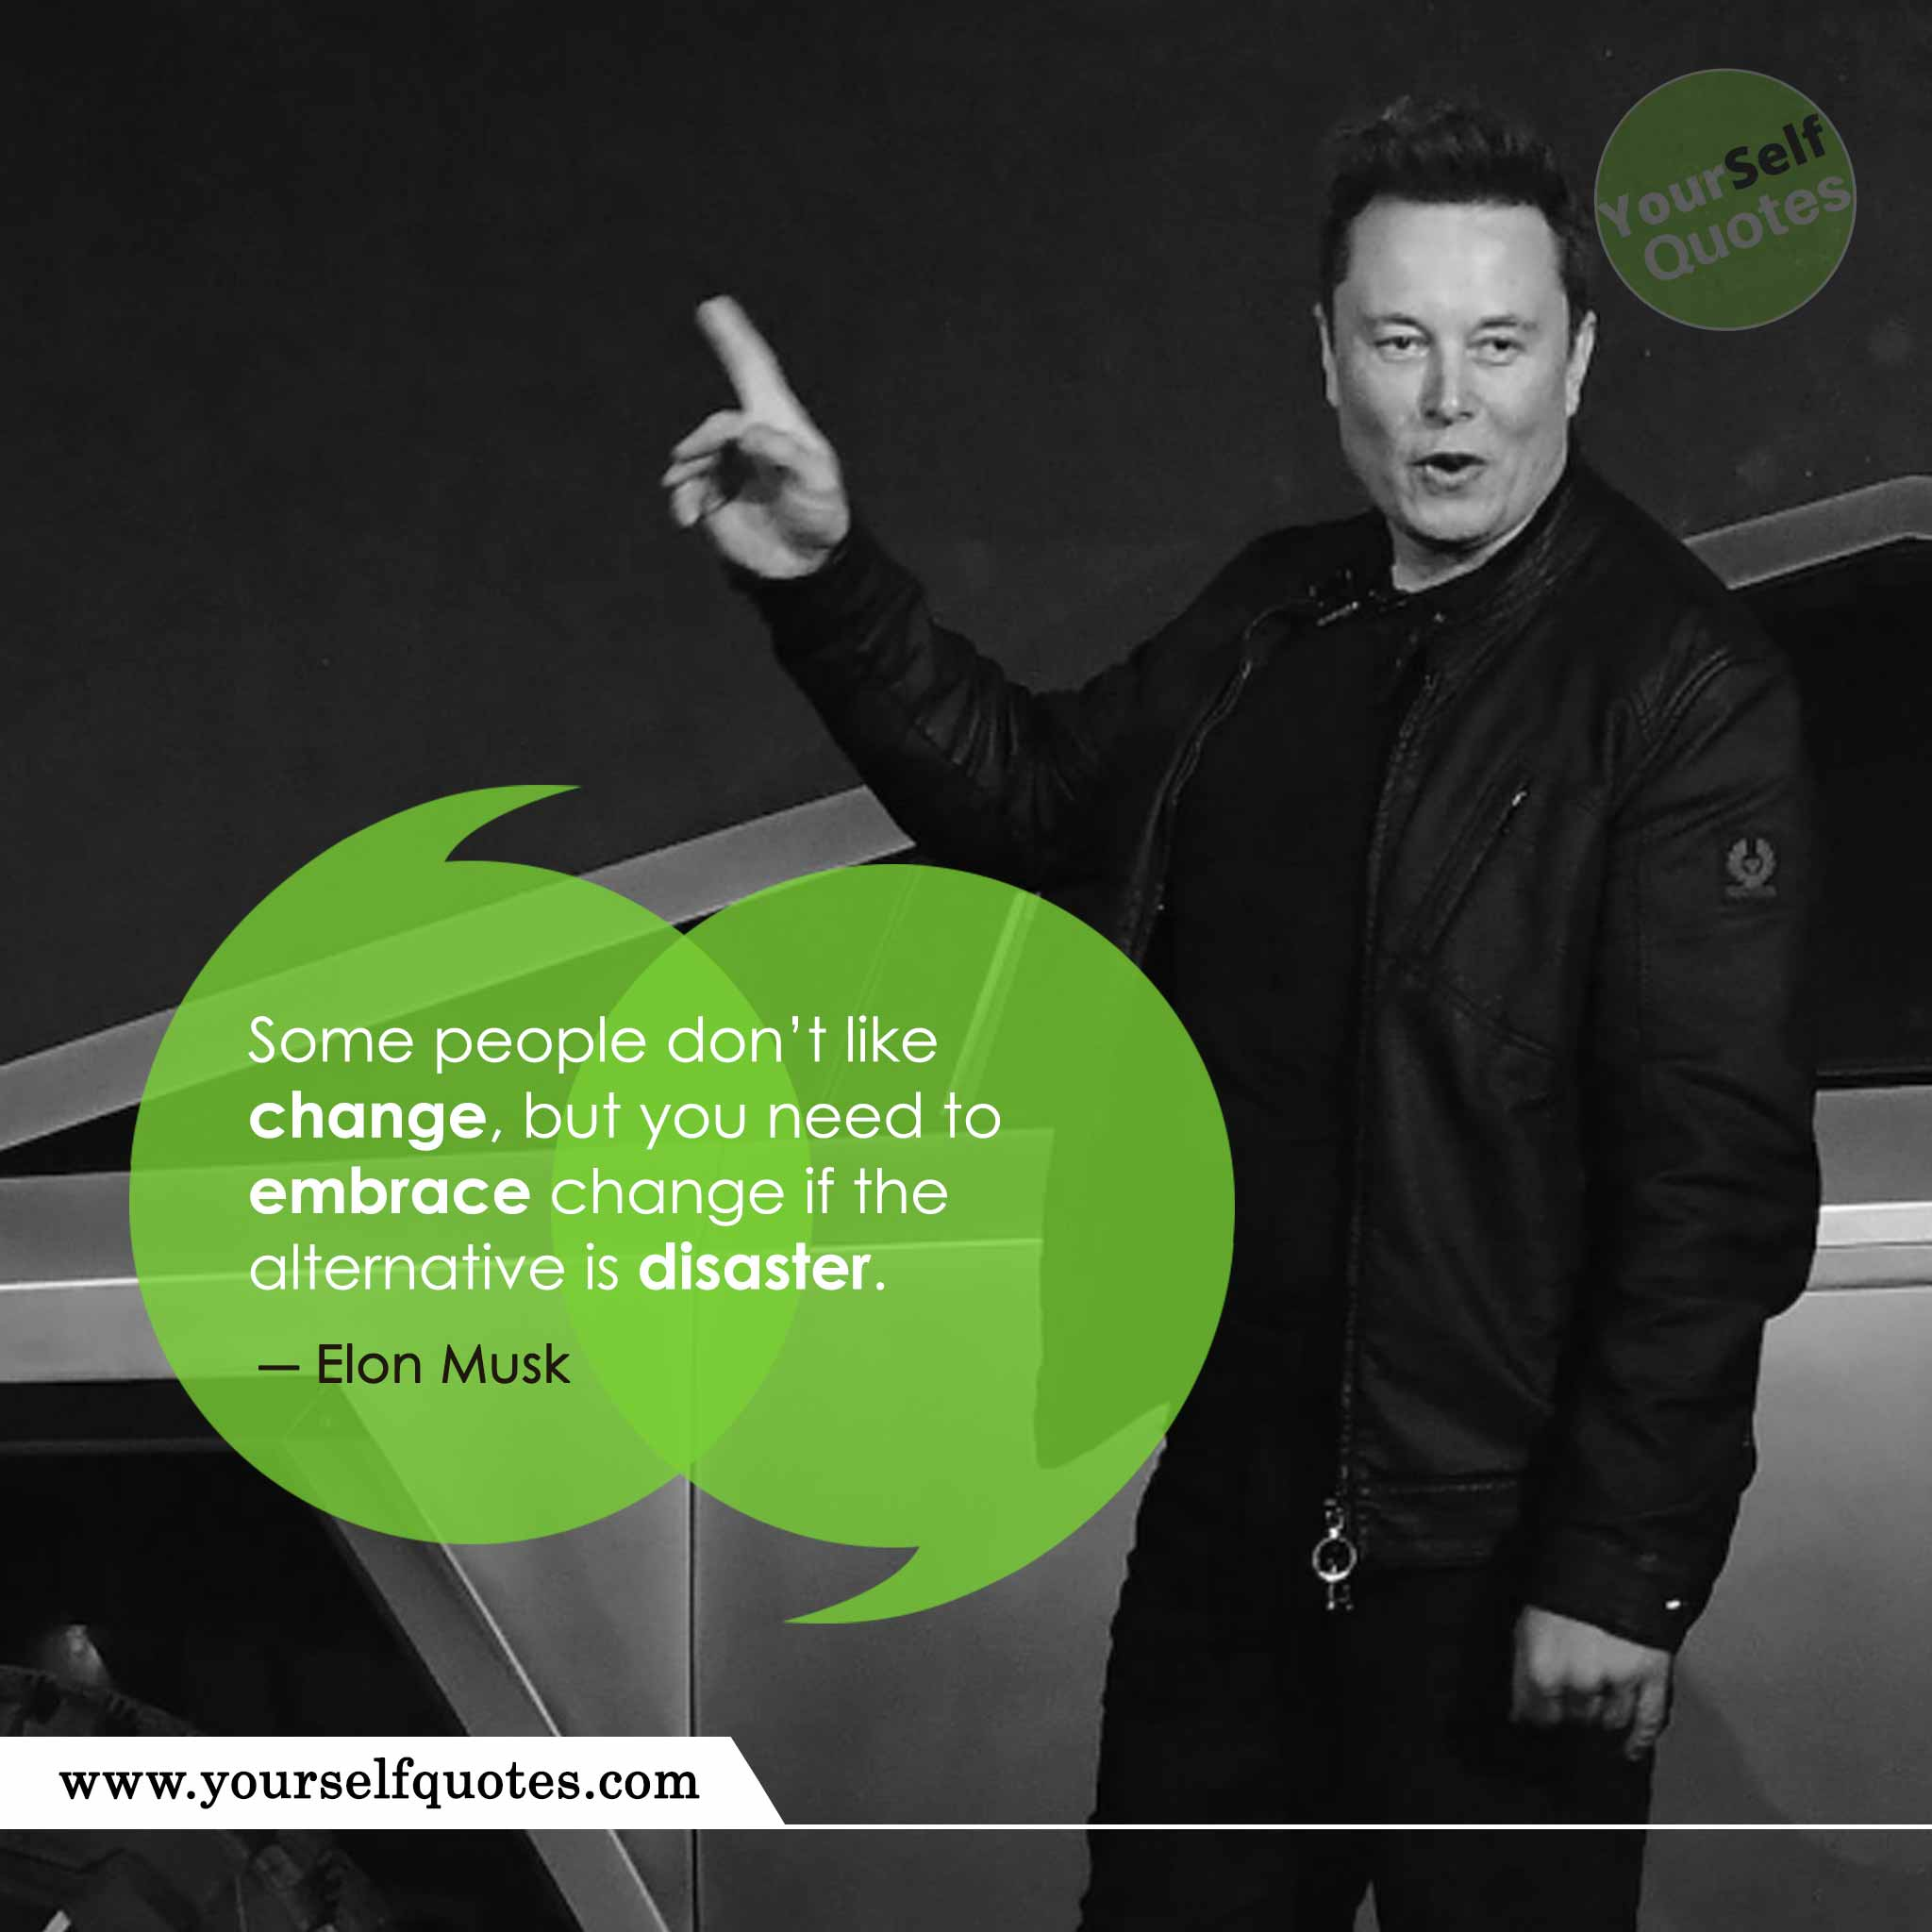 Elon Musk Inspire Quotes